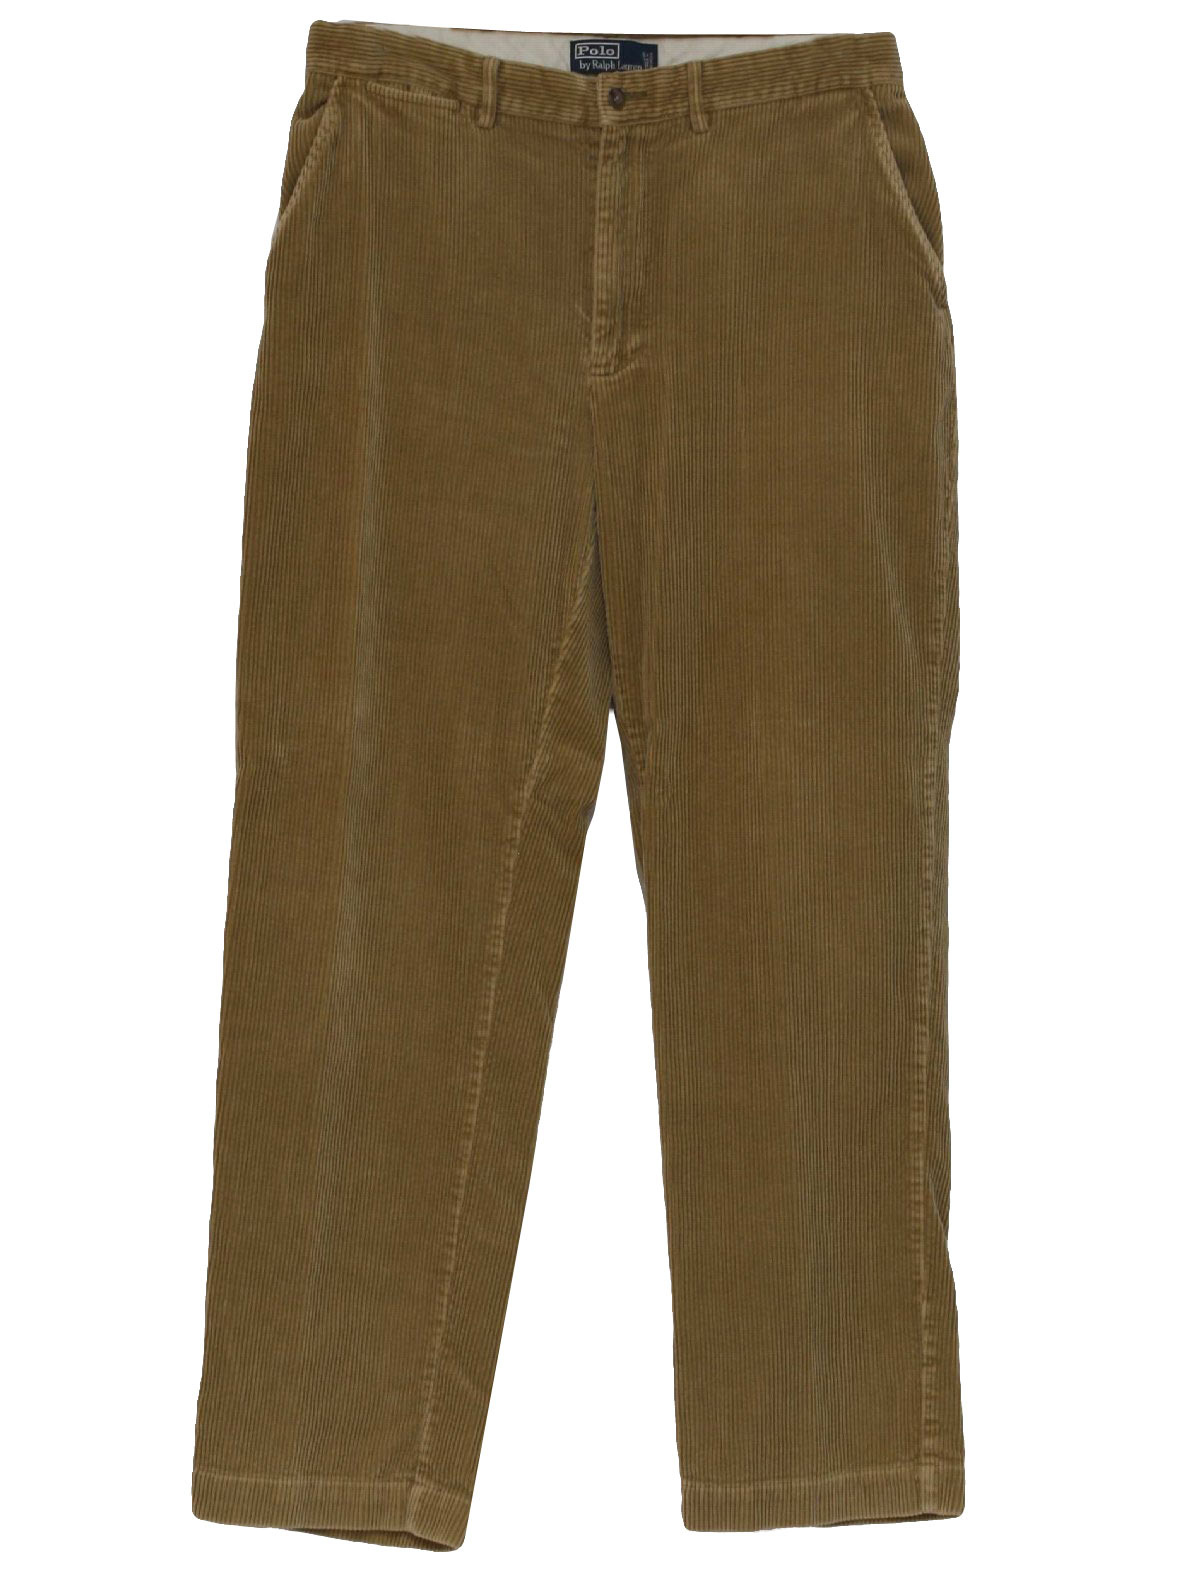 80s Retro Pants: 80s -Polo Ralph Lauren- Mens tan khaki tan cotton ...